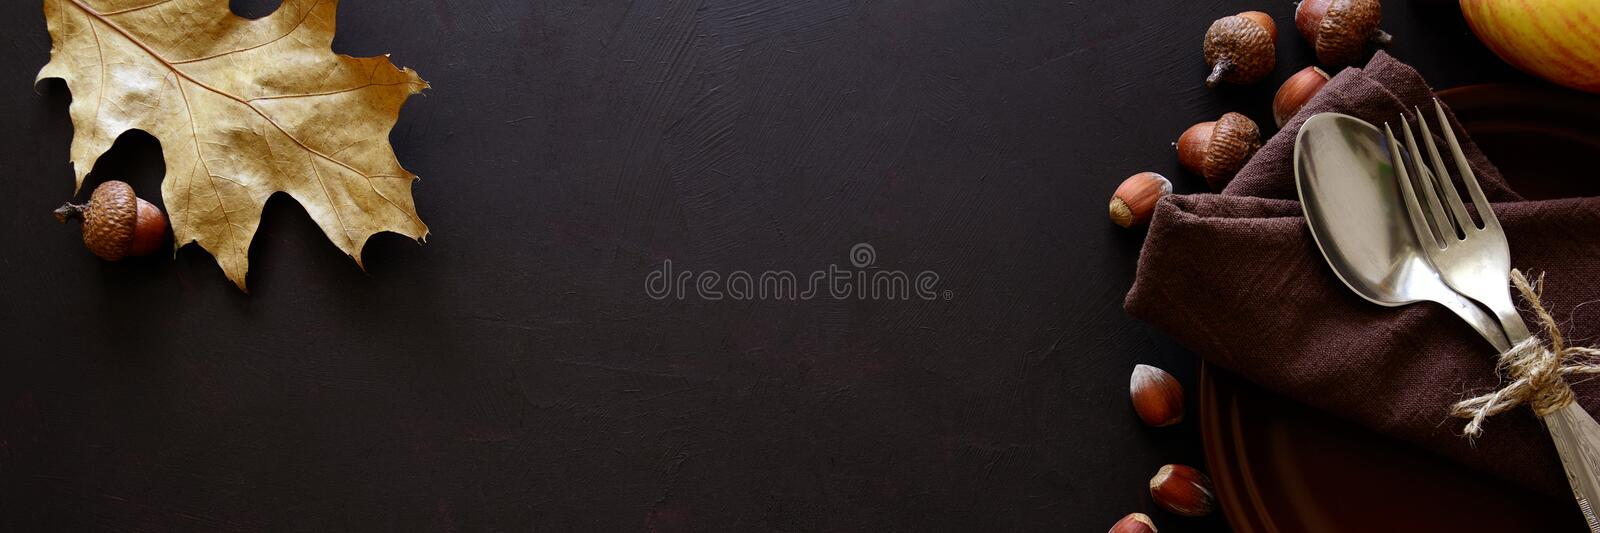 Banner for Web. Tableware, walnuts, hazelnuts, chestnuts and acorns on dark wooden background. stock photography